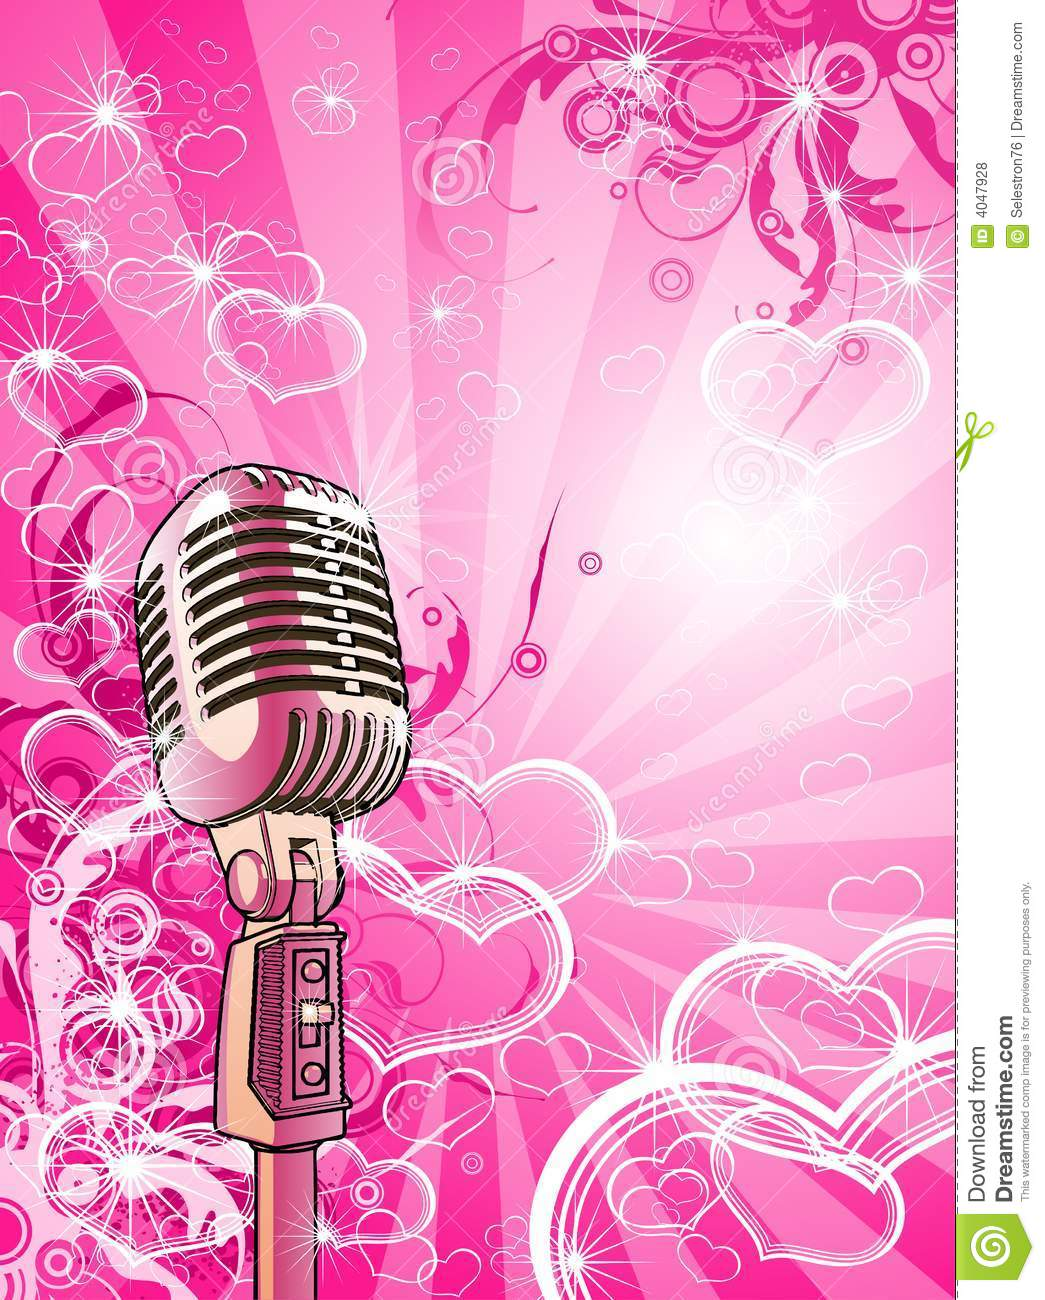 pink valentines microphone royalty free stock photos